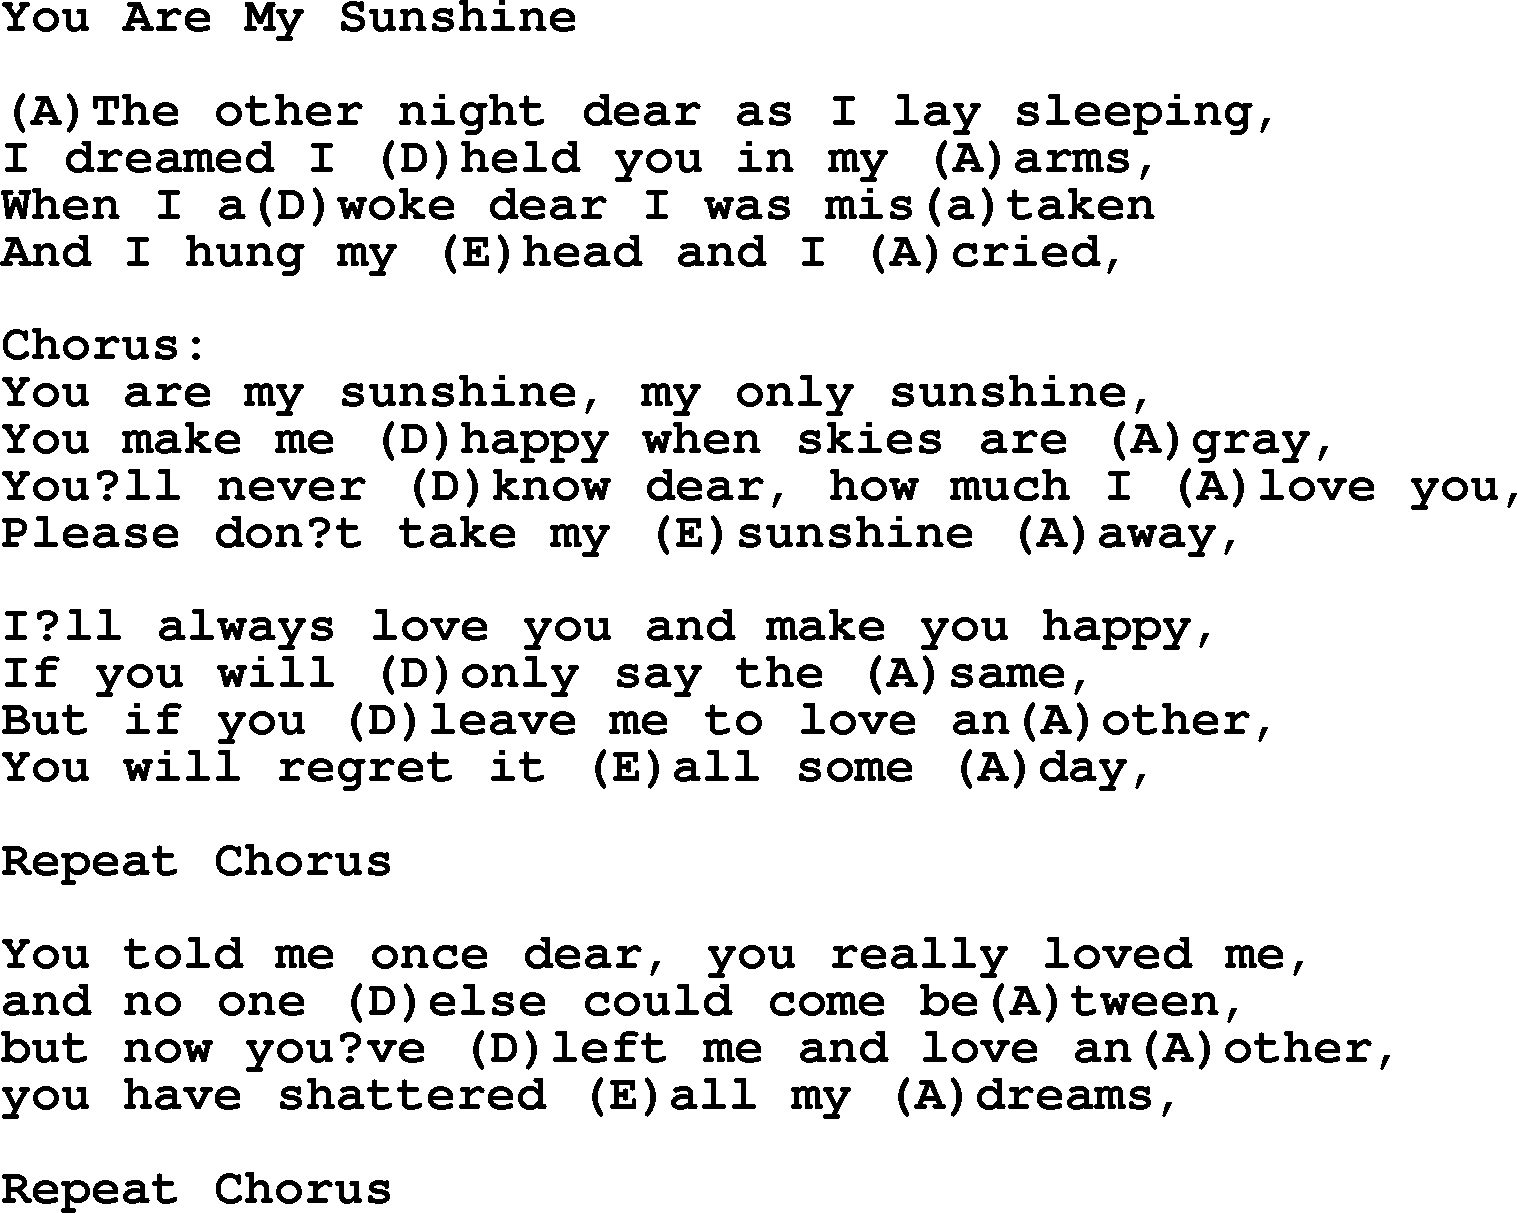 You Are My Sunshine Chords Willie Nelson Song You Are My Sunshine Lyrics And Chords